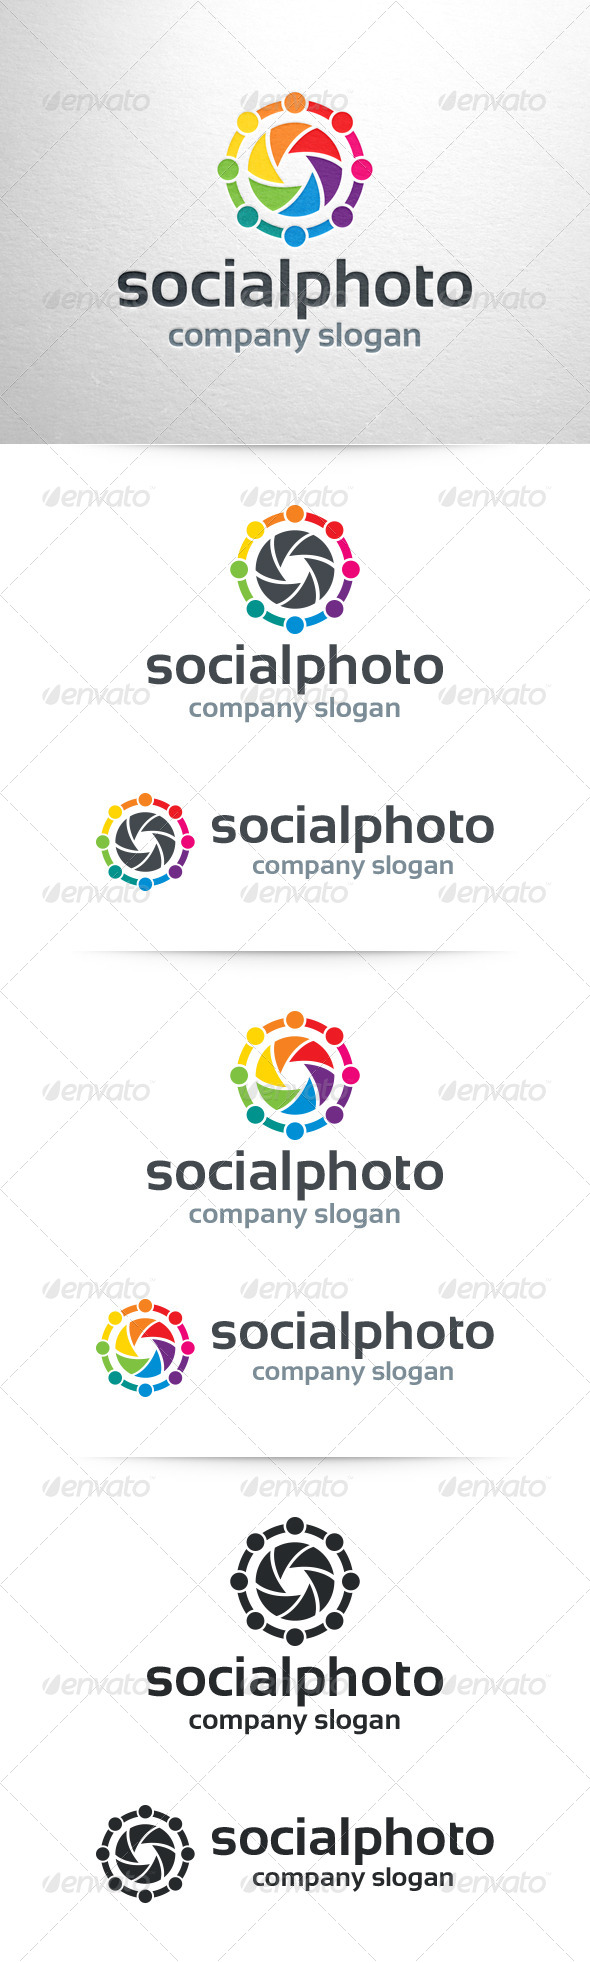 GraphicRiver Social Photo Logo Template 7442328